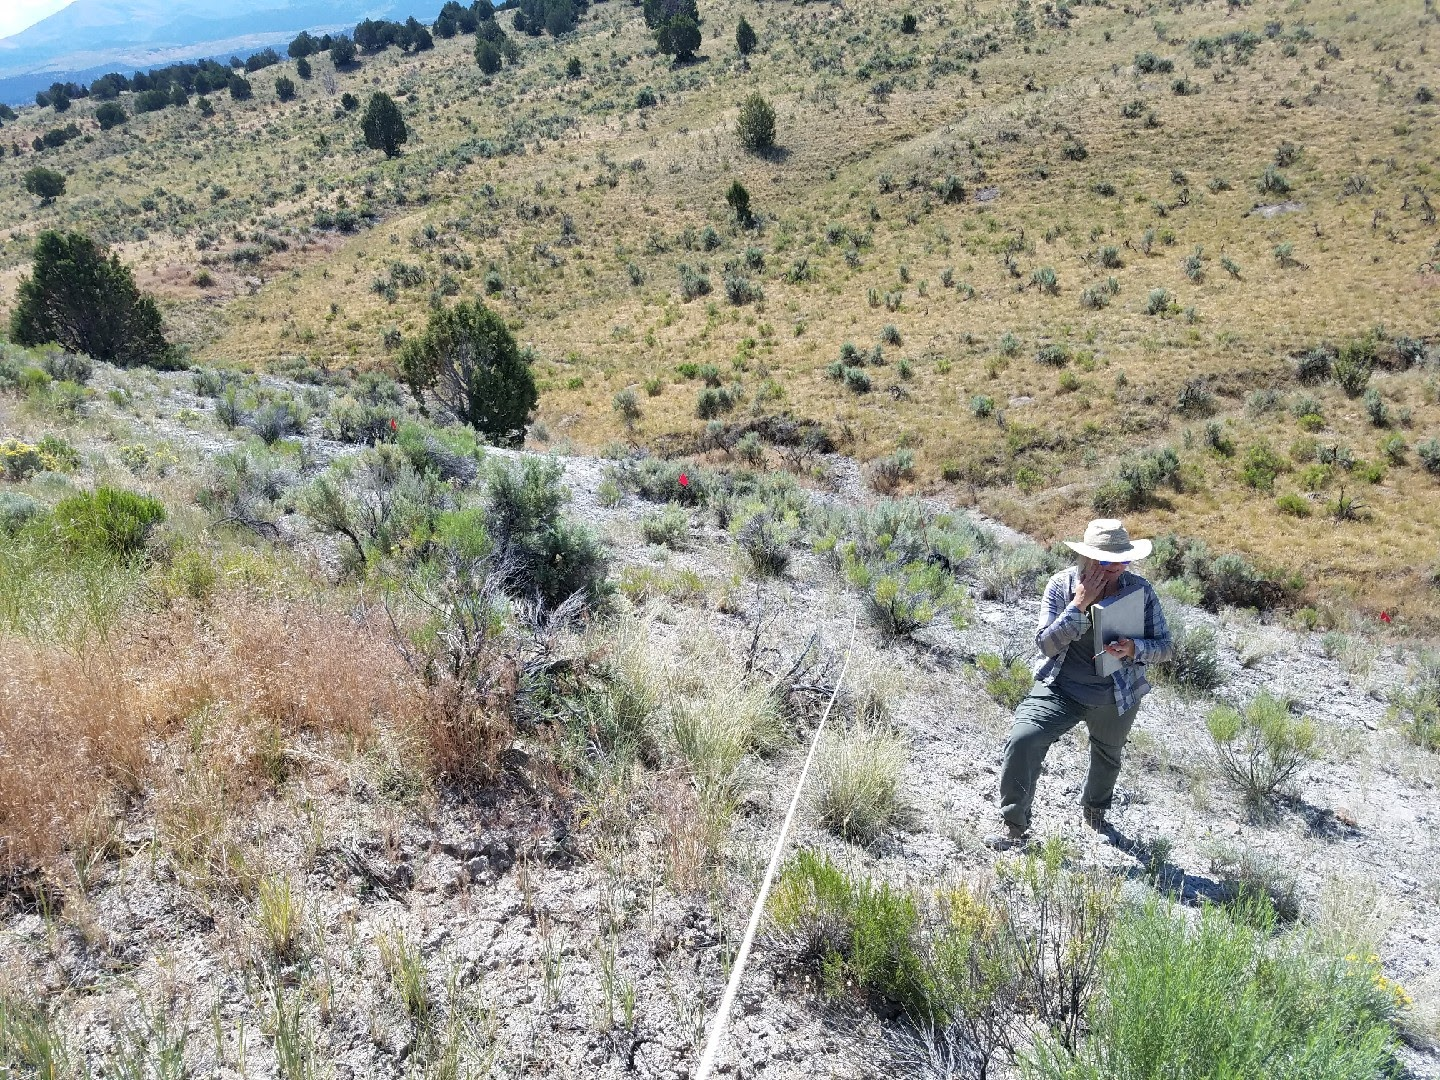 The author running transects to monitor a rare plant species, Goose Creek milkvetch, to understand how their population may be affected by restoration efforts in the area.